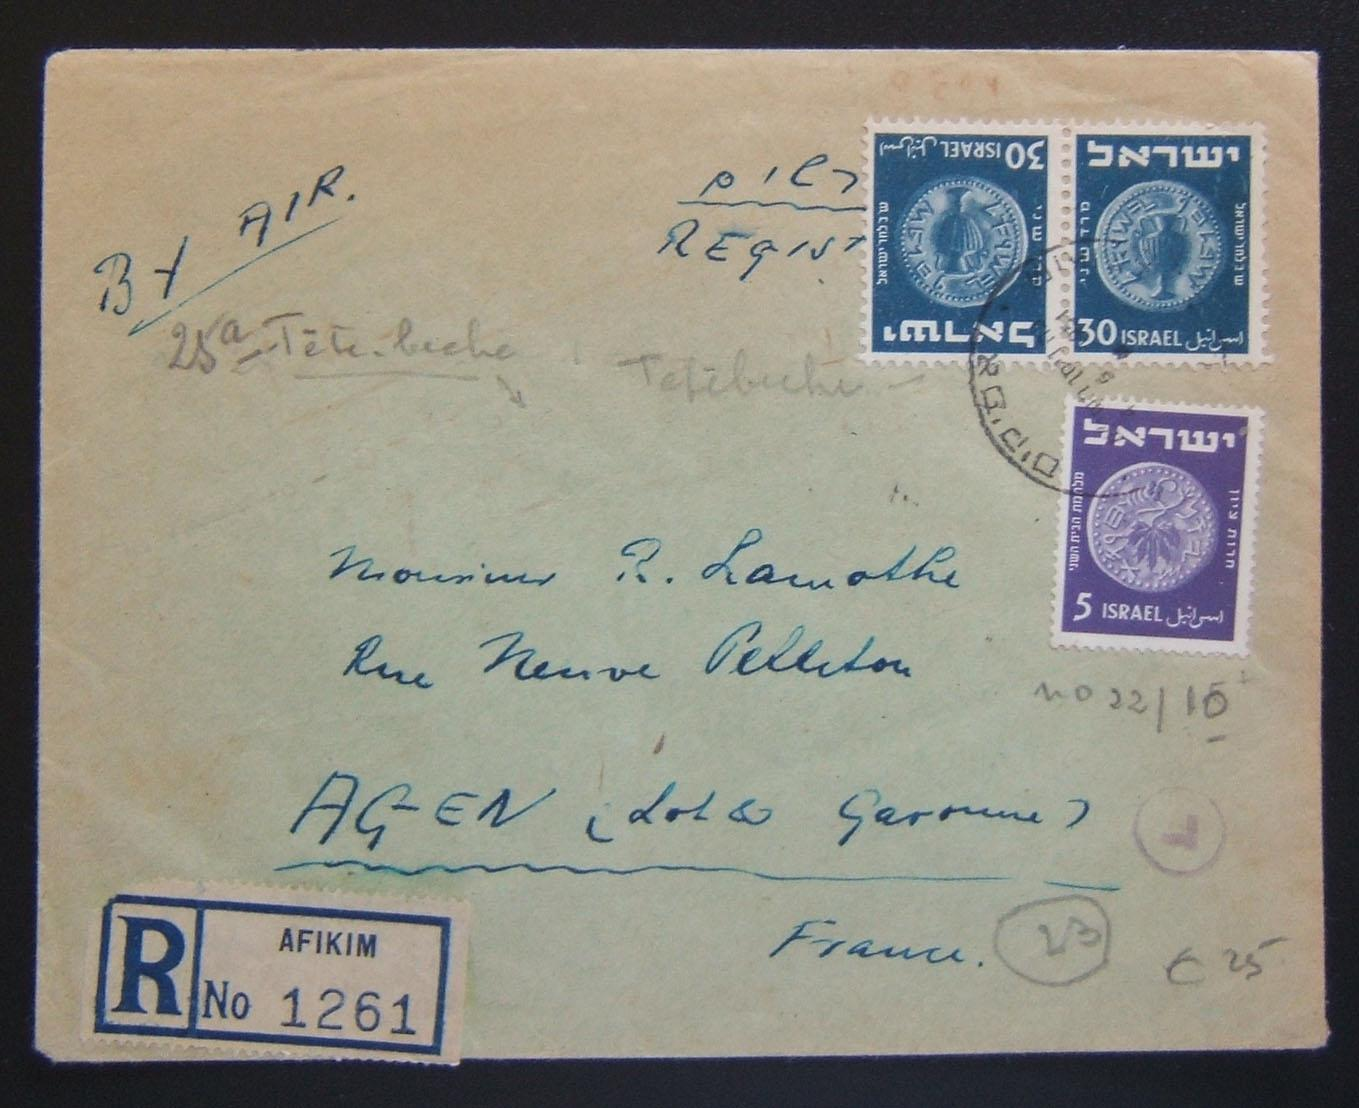 1951 2nd/3rd coinage registered airmail: 4-5-1951 reg. comm a/m cv ex AFIKIM to FRANCE franked 65pr per FA-2a period rate (40pr letter + 25pr reg fee), using scarce 1950 2nd Coinag